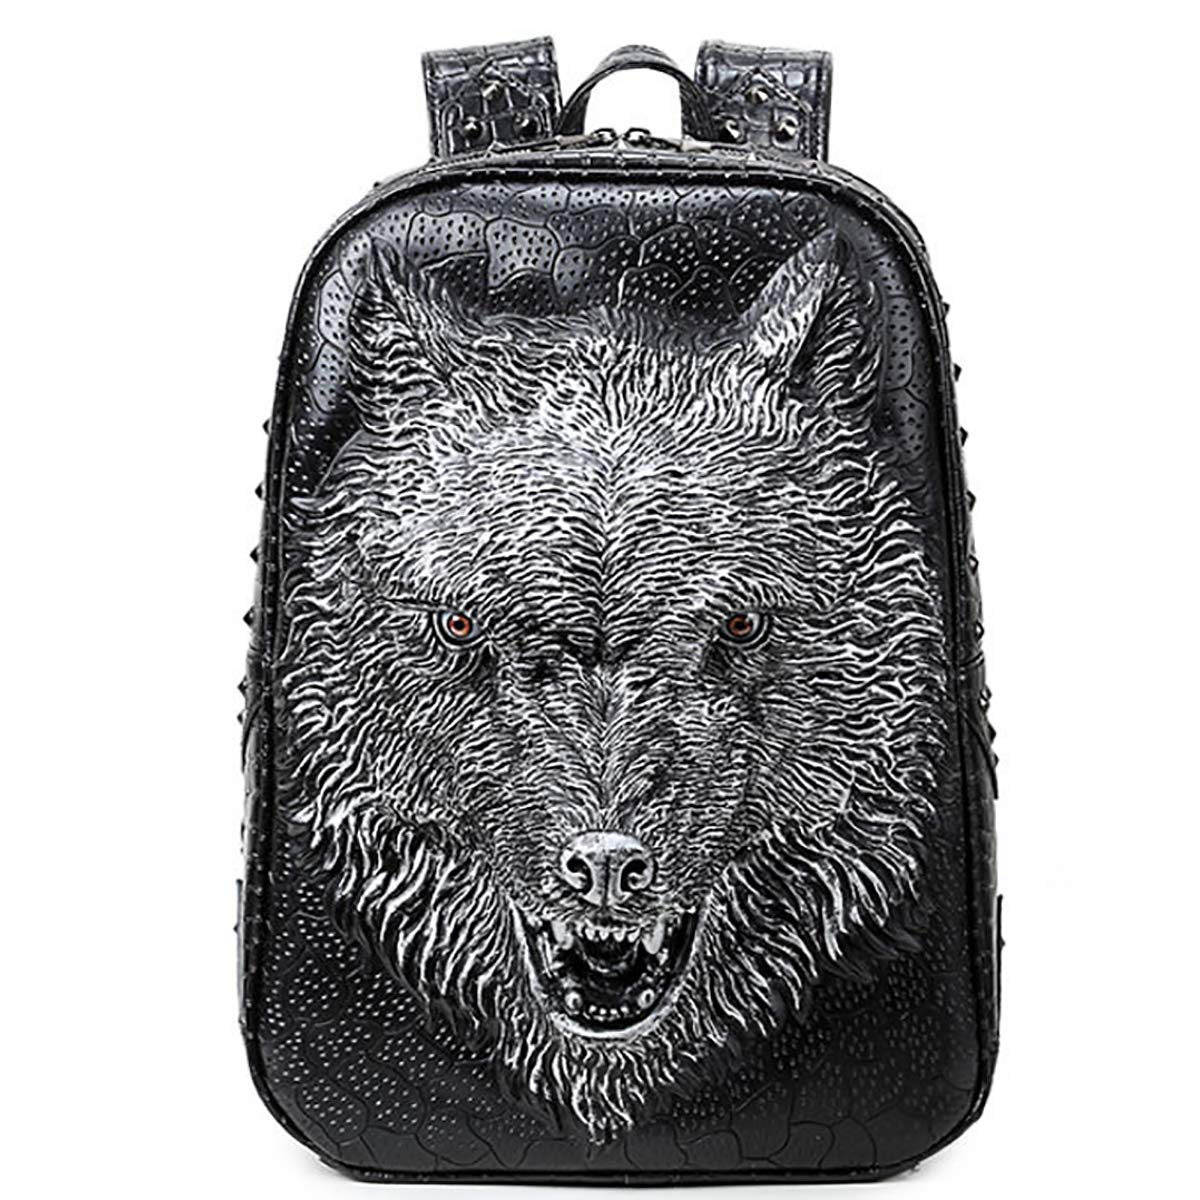 Metallic Creative Backpack Pu Leather Backpack Men's Laptop Bag Female 3D Wolf Head Personality Cool Backpack